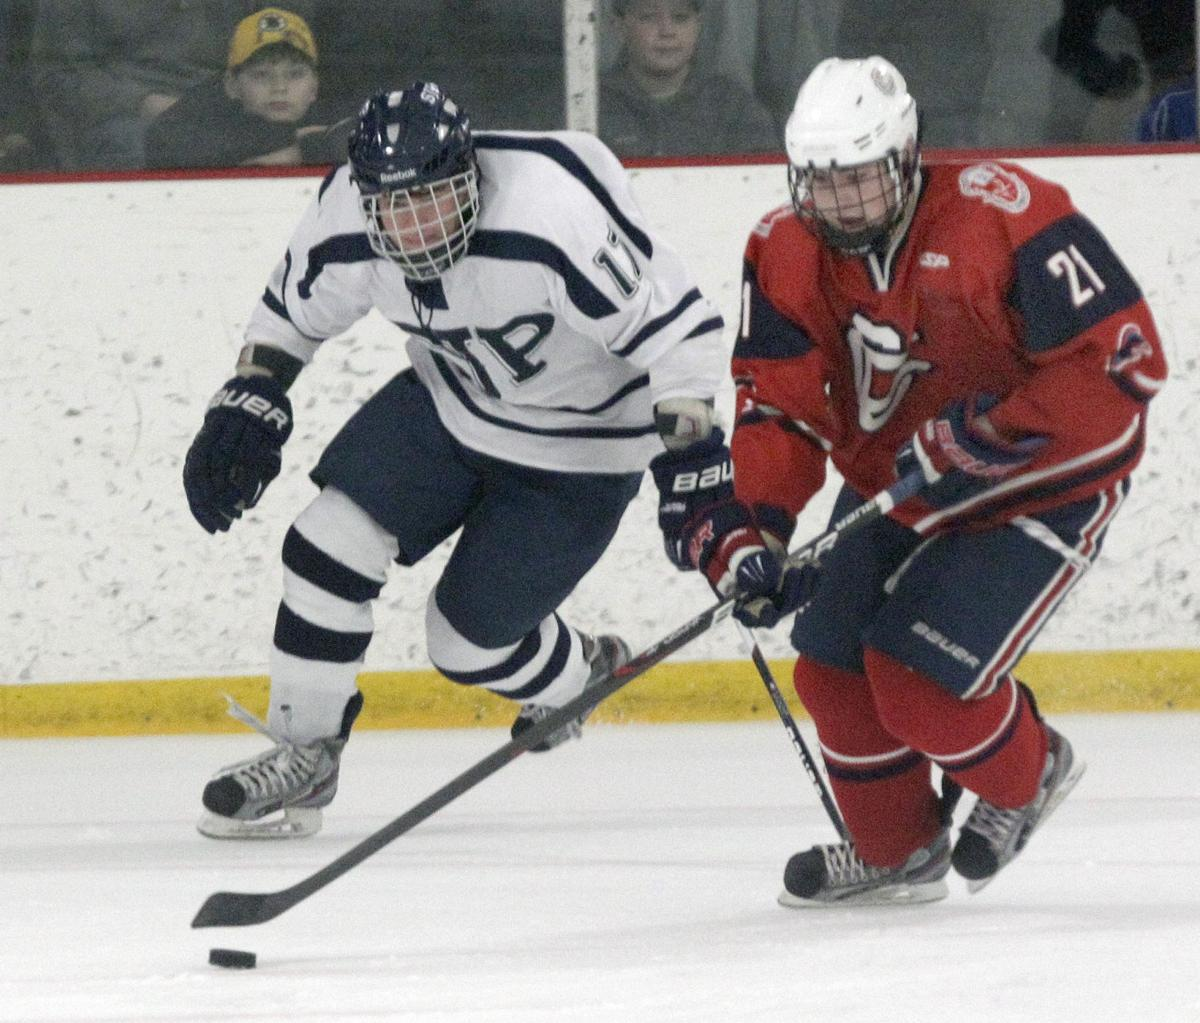 Central Catholic's Billy Stahley, right, takes the puck to the net against St. Johns Prep. The senior has overcome illness to emerge as one of the top scorers for the Raiders.